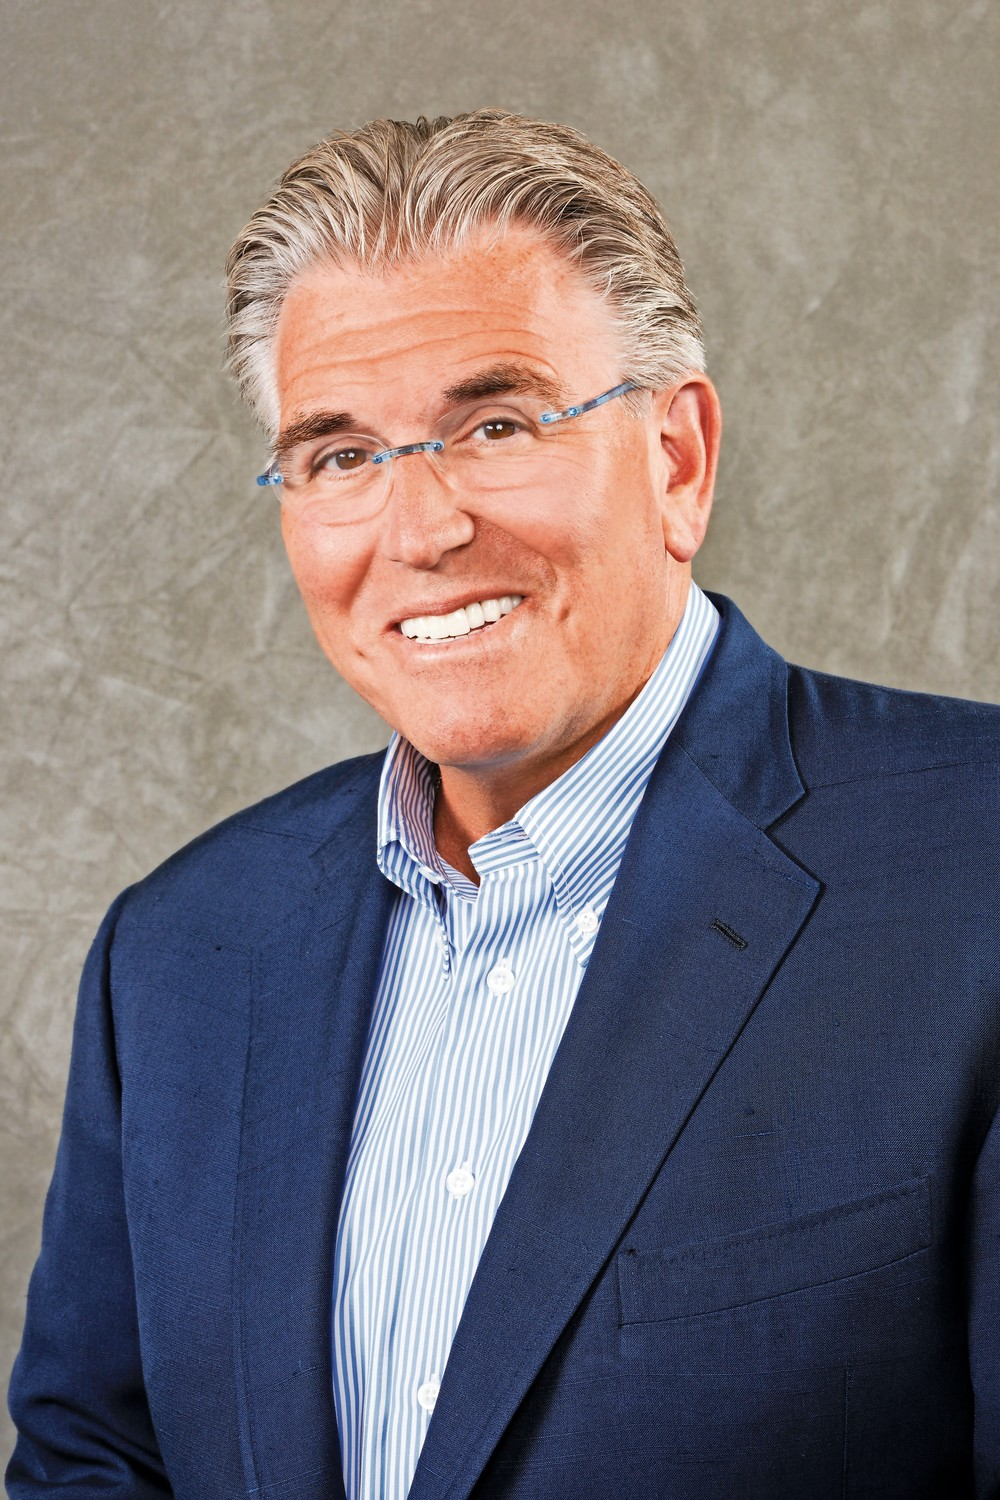 Sports talk radio legend Mike Francesa grew up on Oswego Avenue in East Atlantic Beach and attended Long Beach Catholic Regional School, where he played CYO basketball.